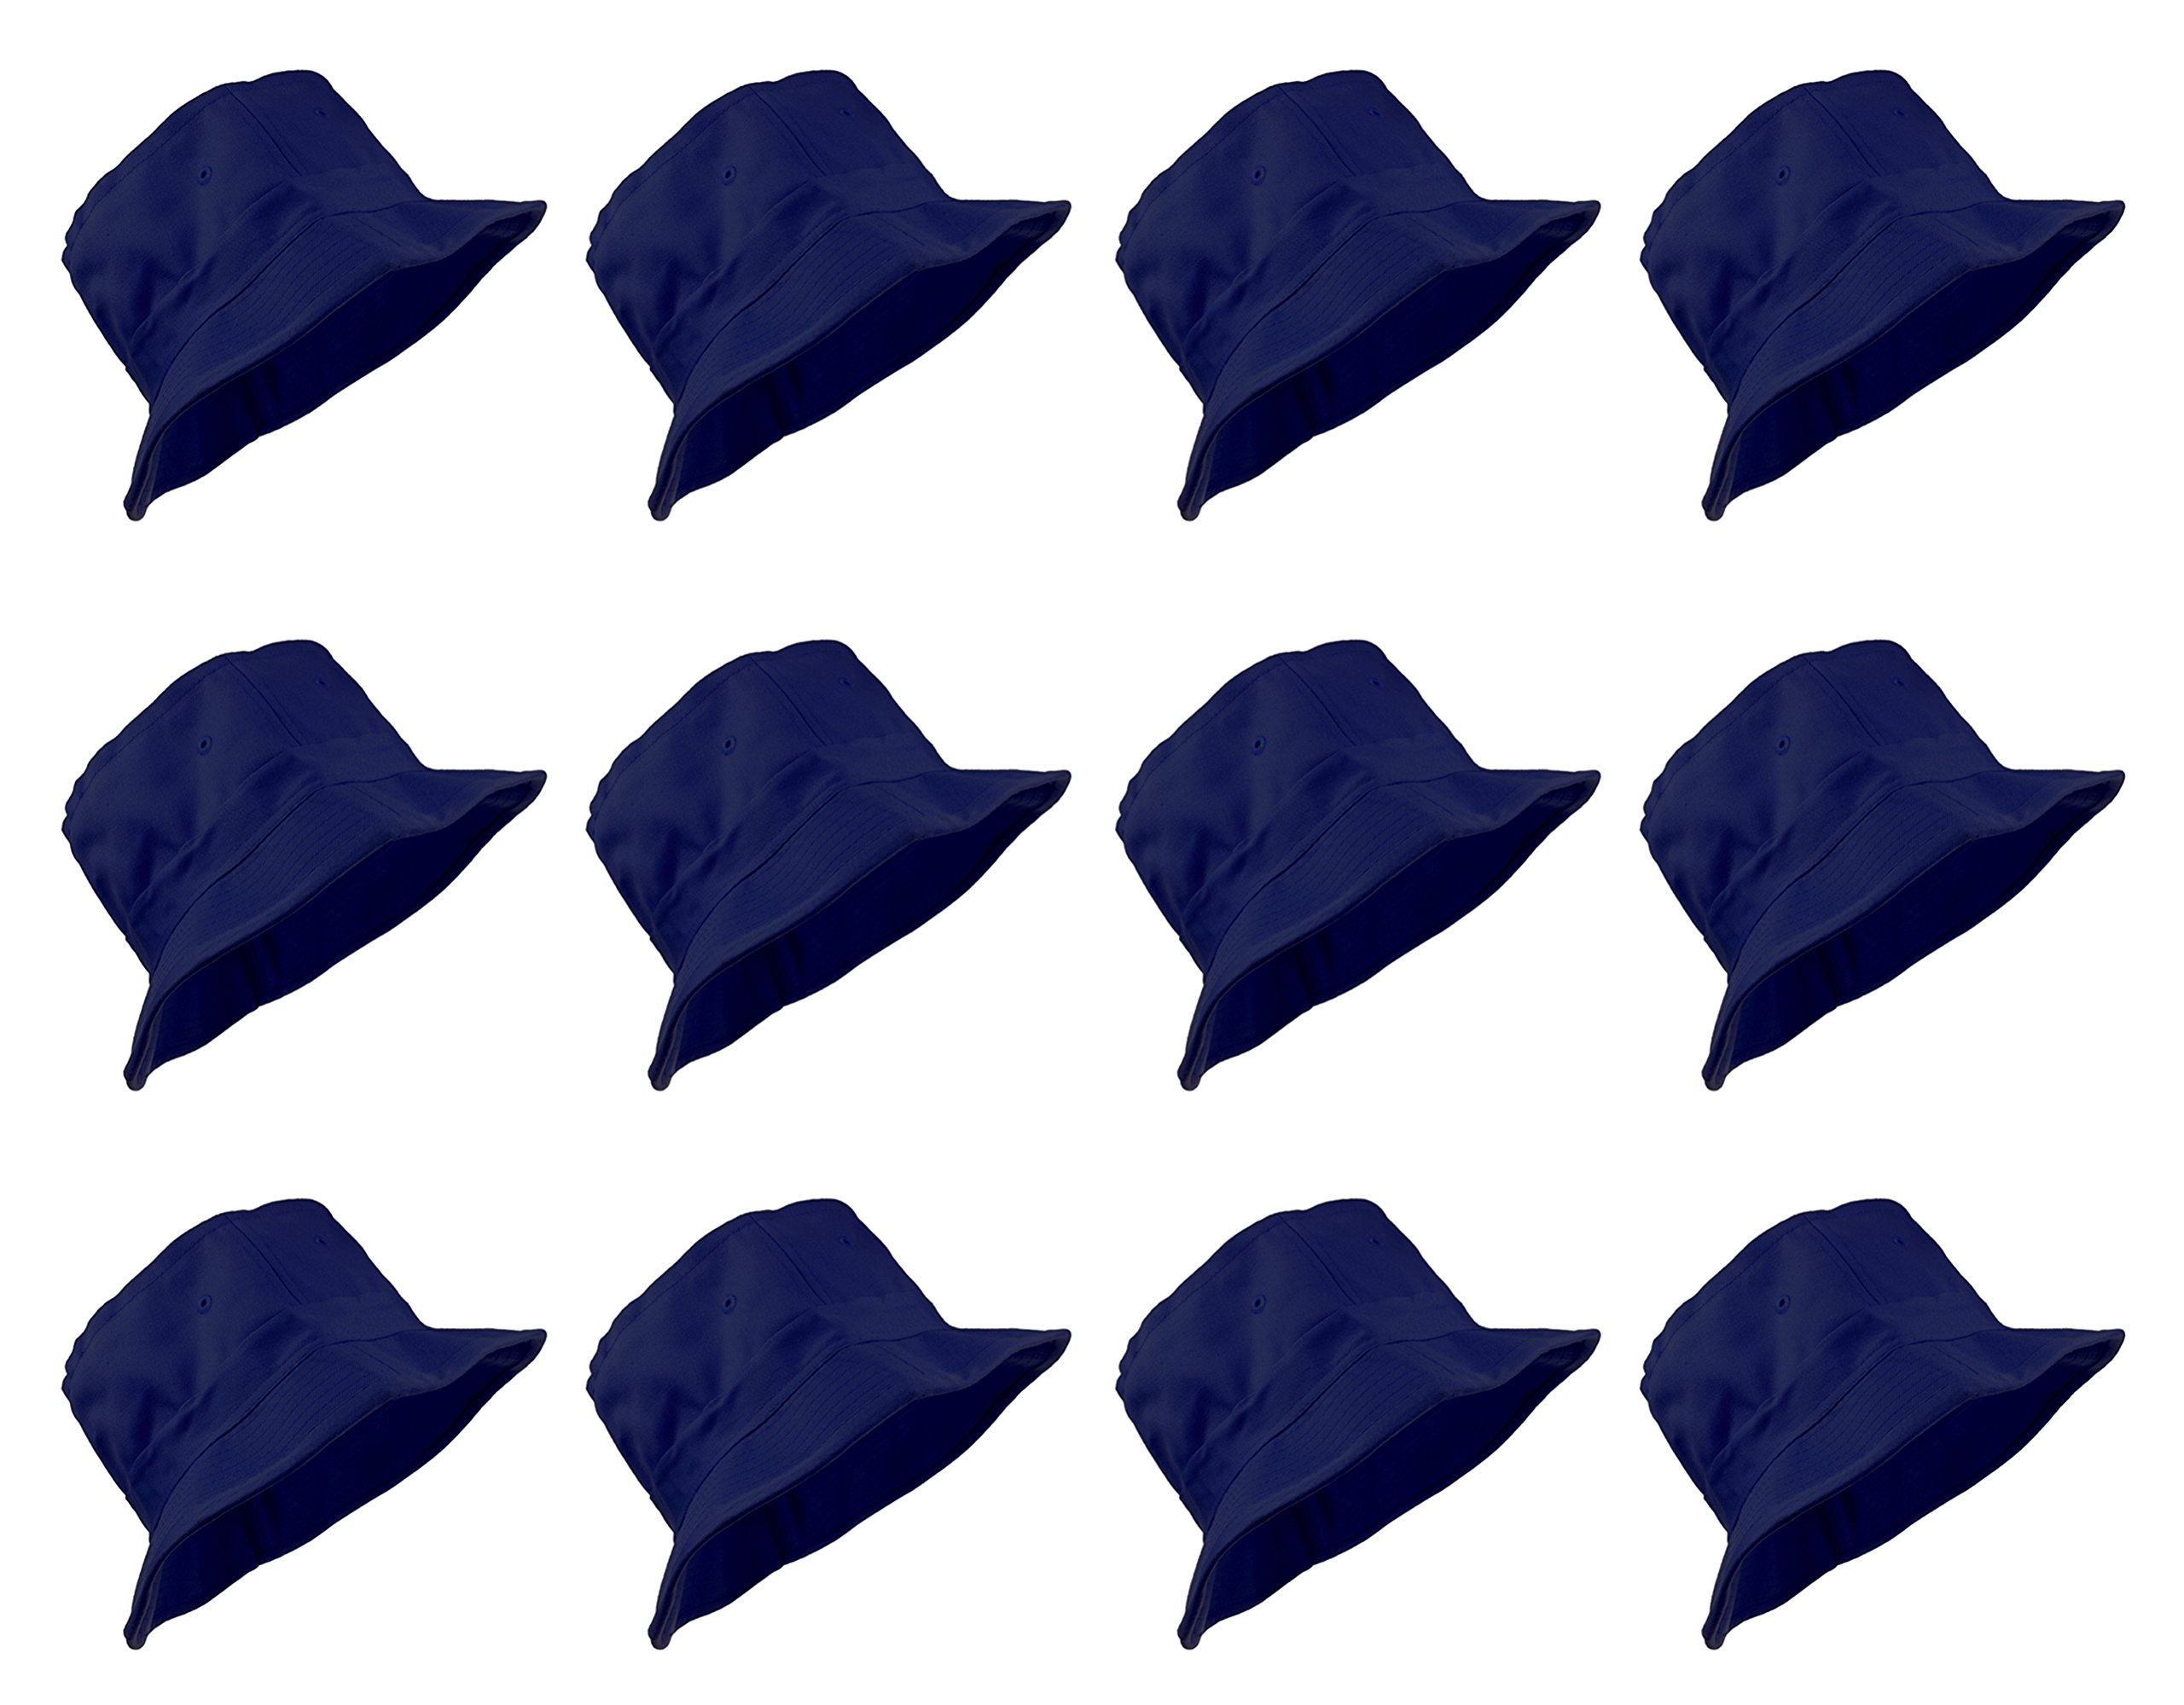 Enimay 12 Pack of Classic Style Bucket Hats Soild Colors Many Styles Navy